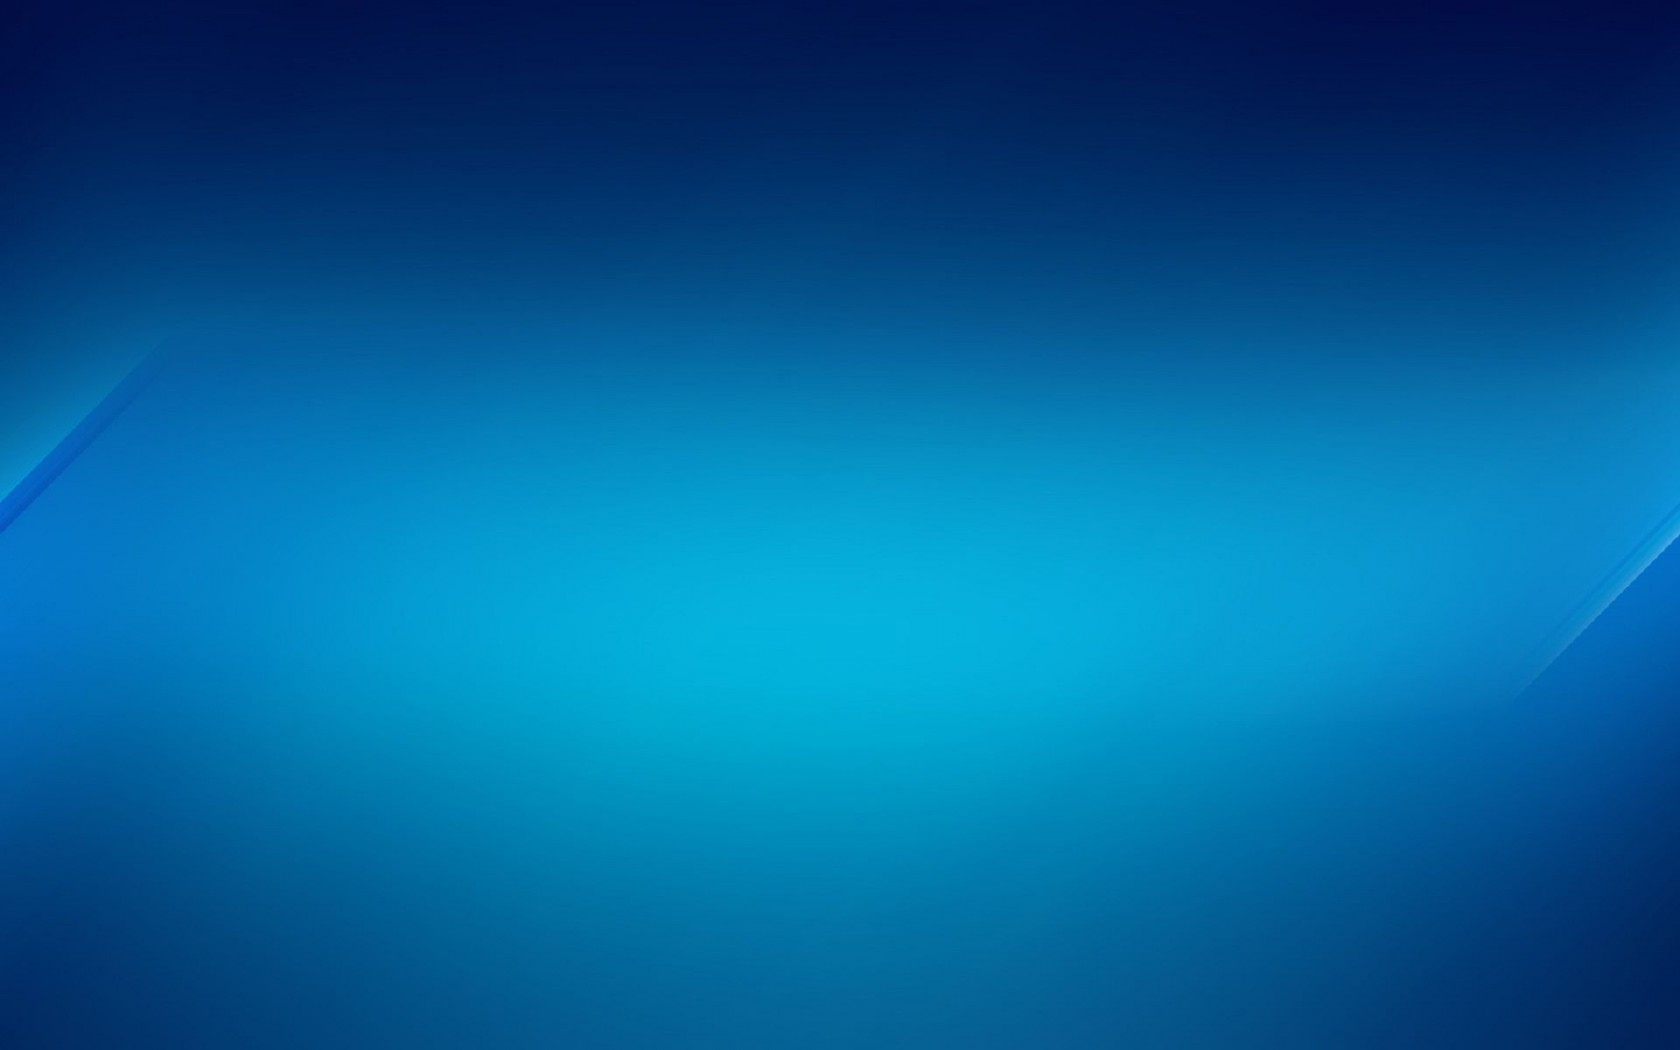 Blue-Background-16